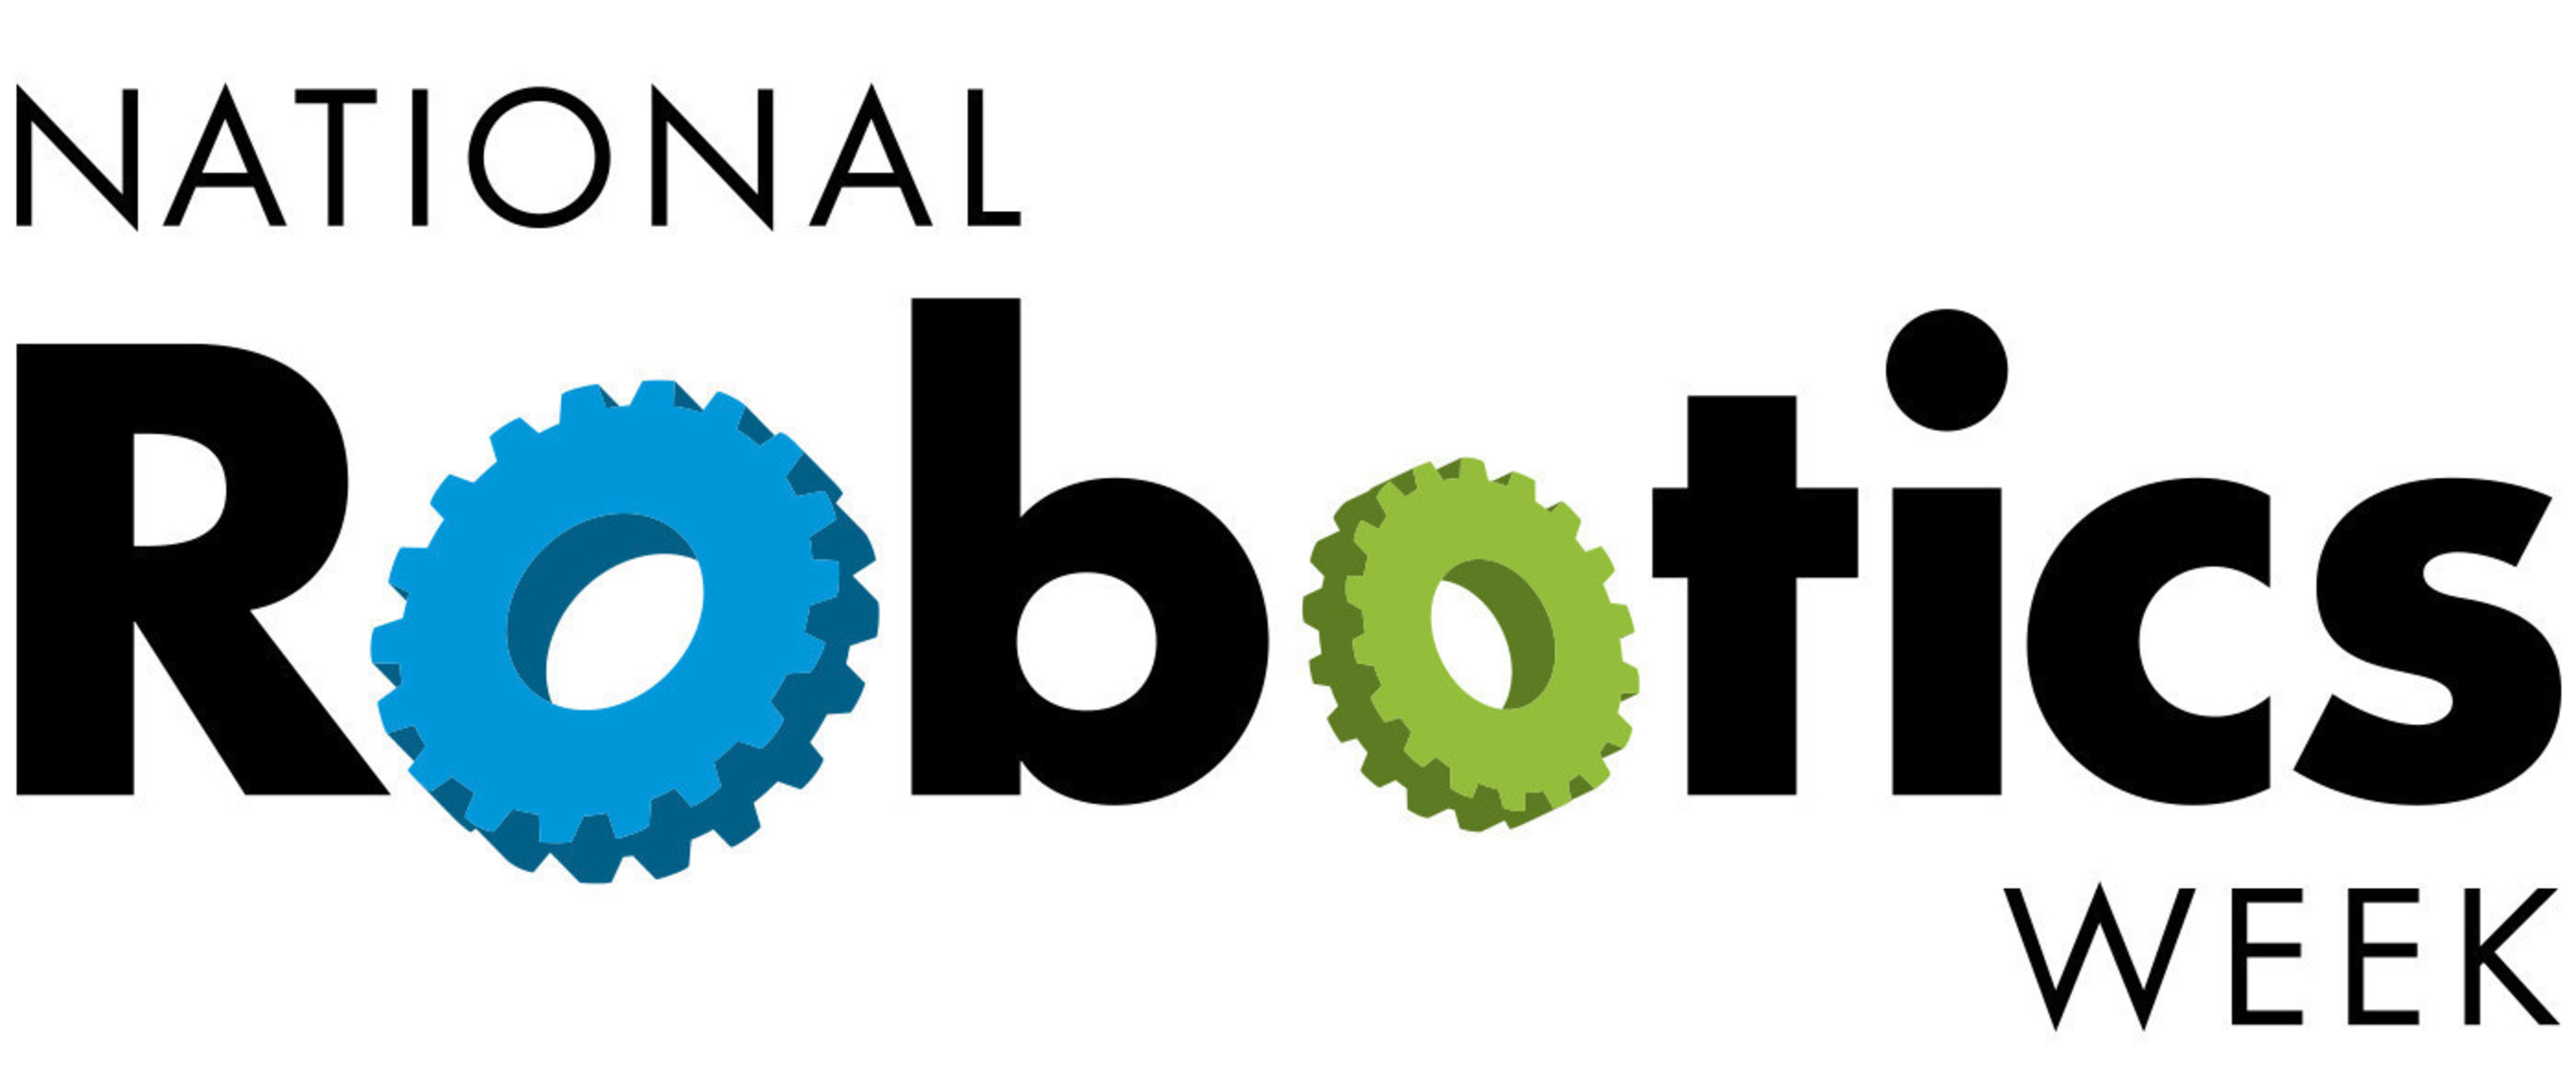 The seventh annual National Robotics Week is scheduled for April 2-10, 2016. National Robotics Week brings together students, educators and influencers who share a passion for robots and technology. To list an event, or to identify existing regional events, please visit: http://www.nationalroboticsweek.org/Events/Submit